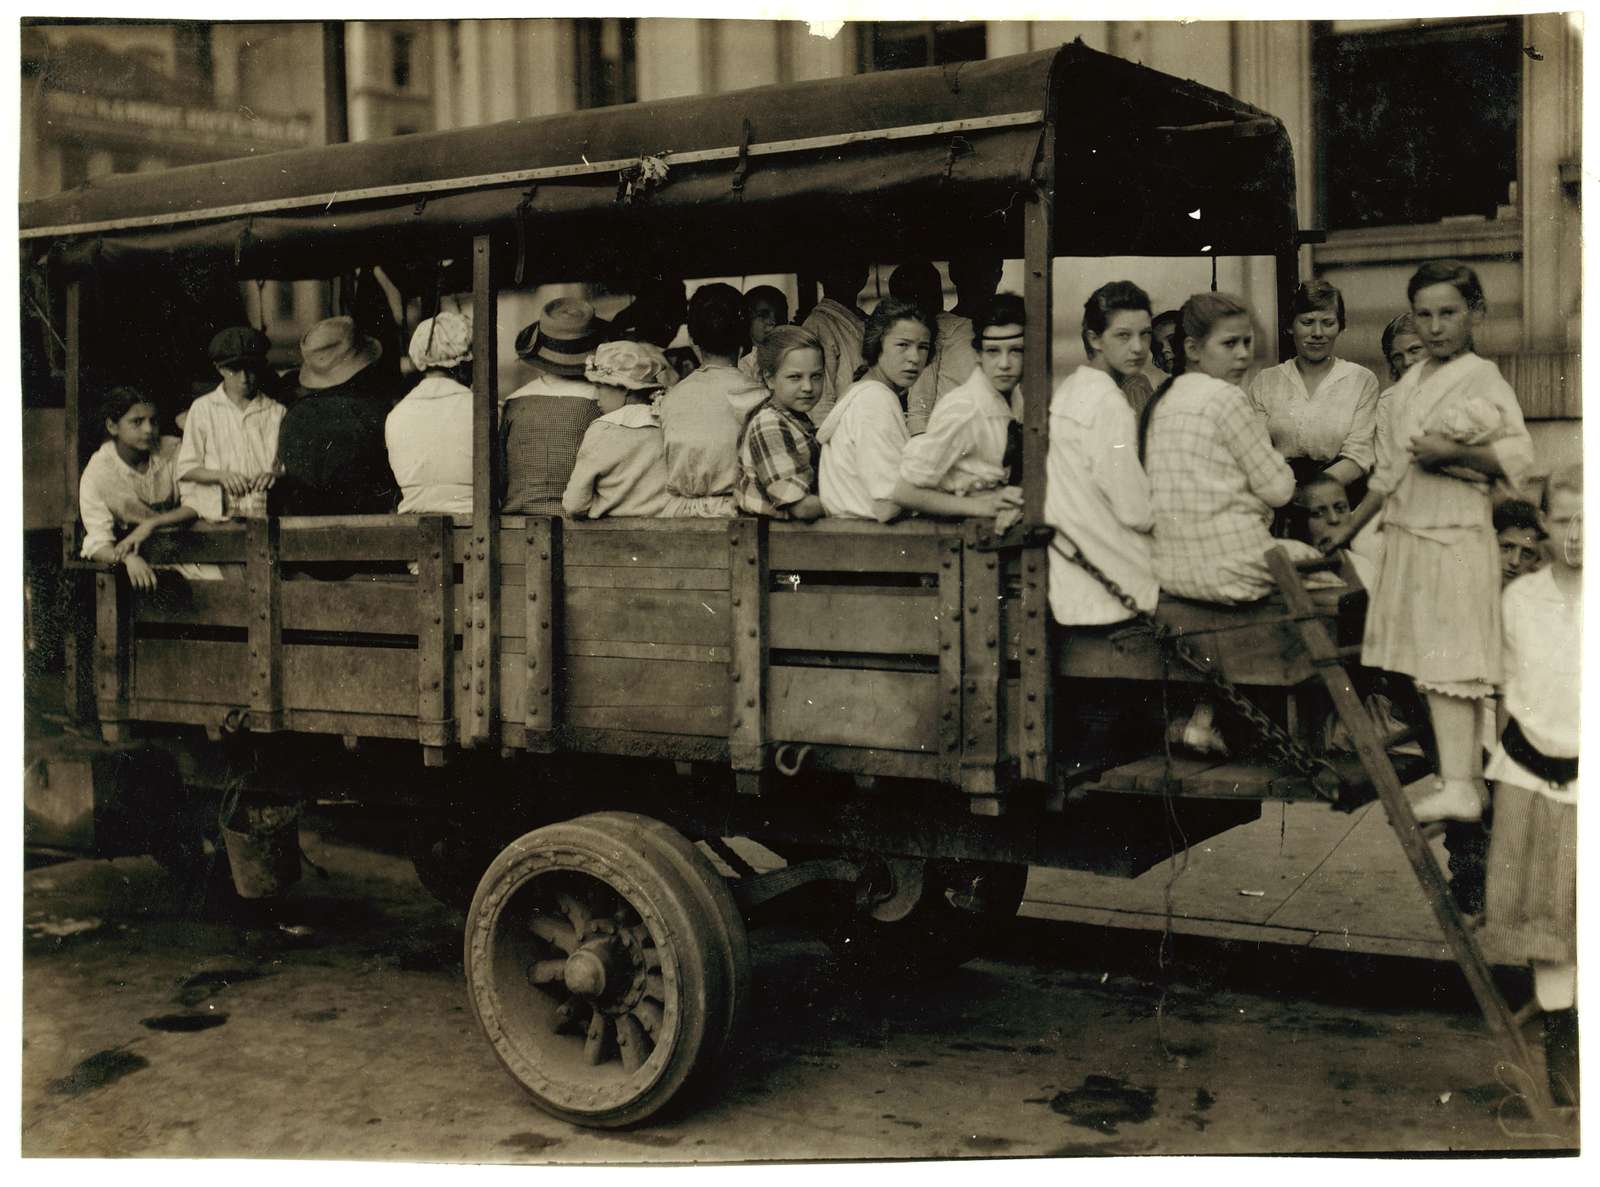 6:00 A.M. at Post Office Square. Truck load of tobacco workers bound for American Sumatra Tobacco Farm, South Windsor. They return about 7 P.M. Location: Hartford, Connecticut L.W. Hine